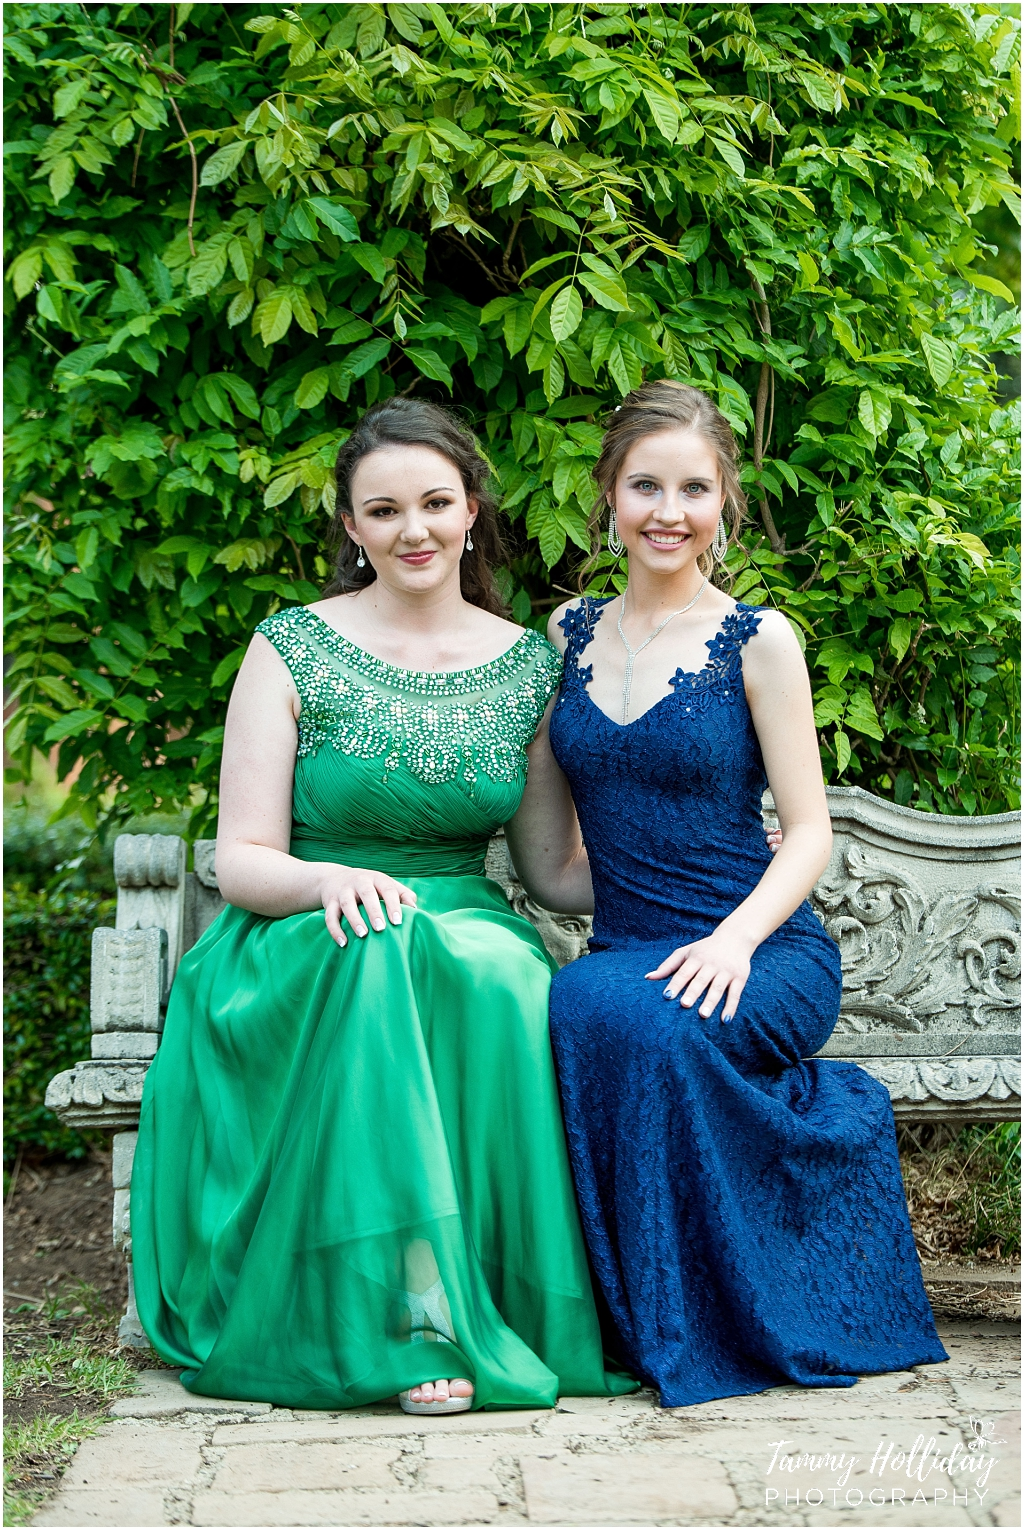 matric girl in green dress sitting on concrete bench with friend in a blue dress